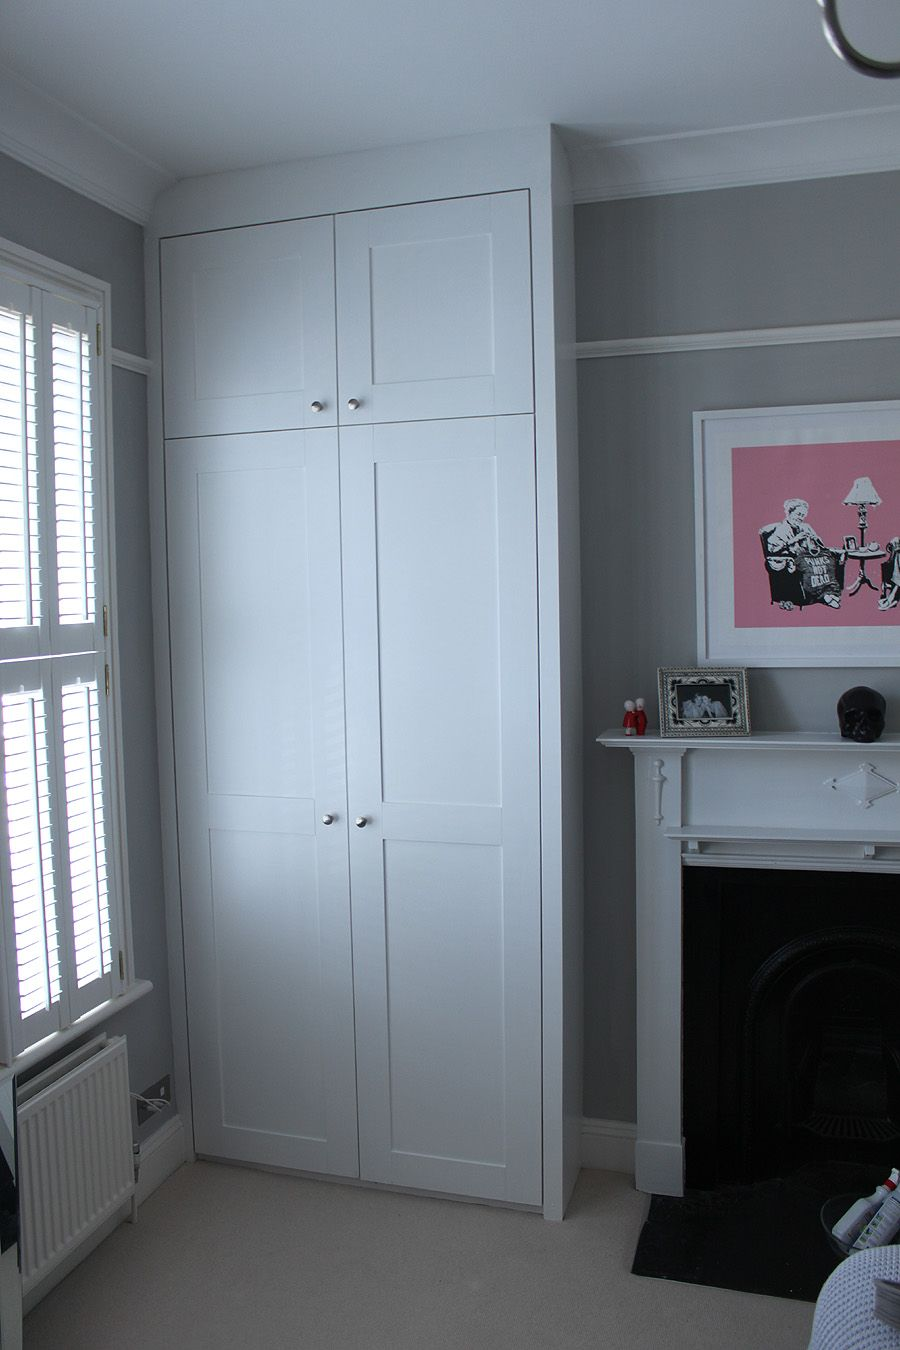 New doors for fitted wardrobes - Pair Of An Alcove Fitted Wardrobes Either Side Of The Chimney Made With Shaker Doors And Separate Cupboard Doors At The Top Installed And Painted For Our